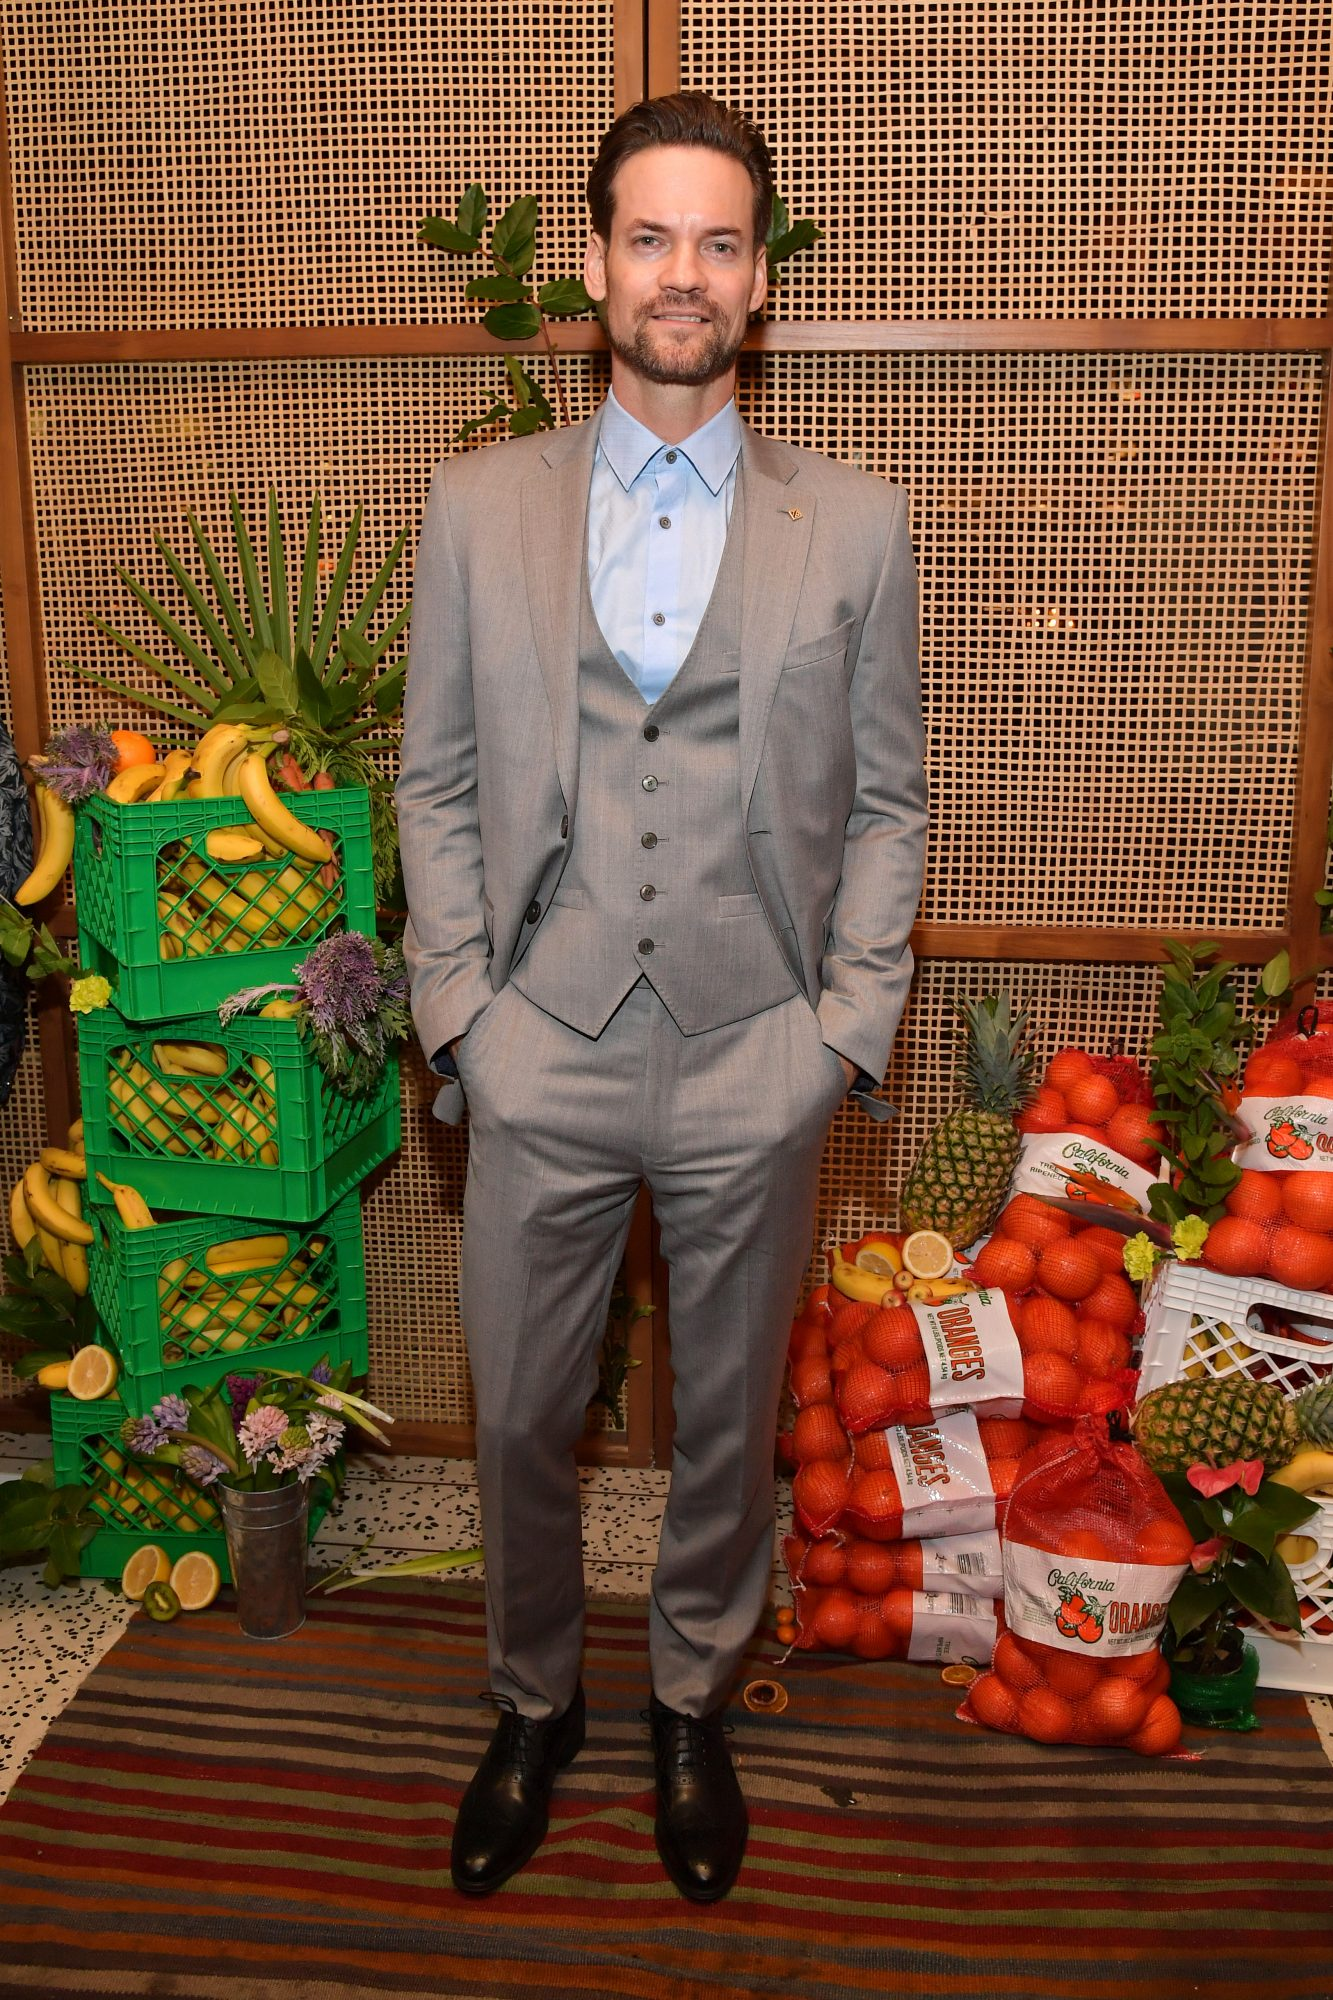 SANTA MONICA, CALIFORNIA - MARCH 20: Shane West attends the Ted Baker London SS'19 Launch Event at Elephante on March 20, 2019 in Santa Monica, California. (Photo by Amy Sussman/Getty Images for Ted Baker London)